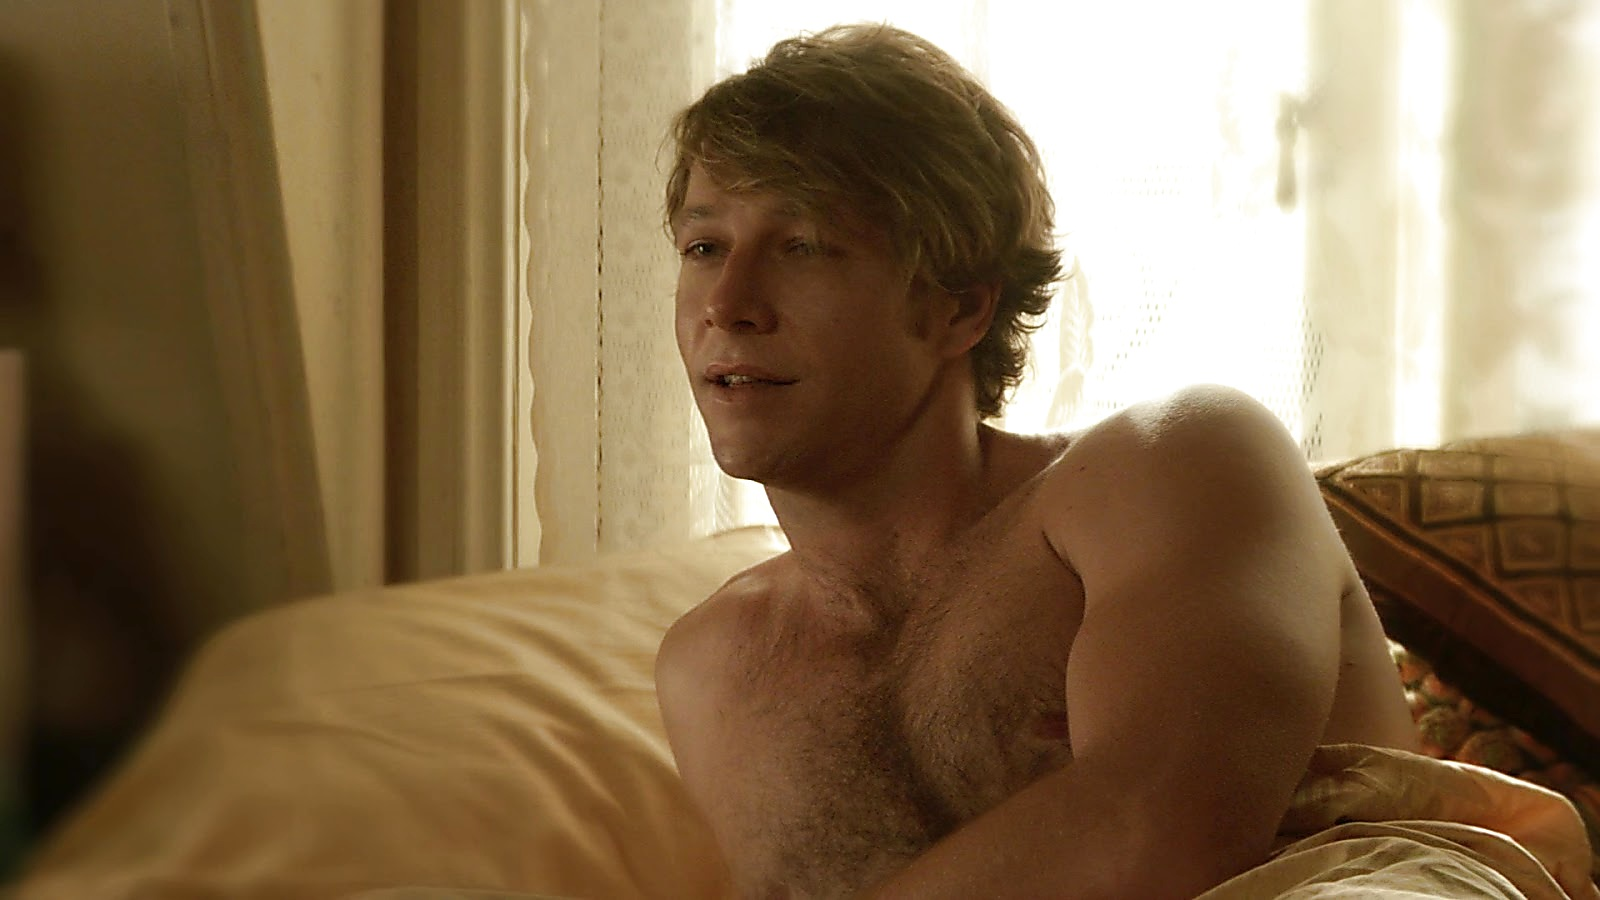 Luke Bracey sexy shirtless scene April 4, 2020, 12pm